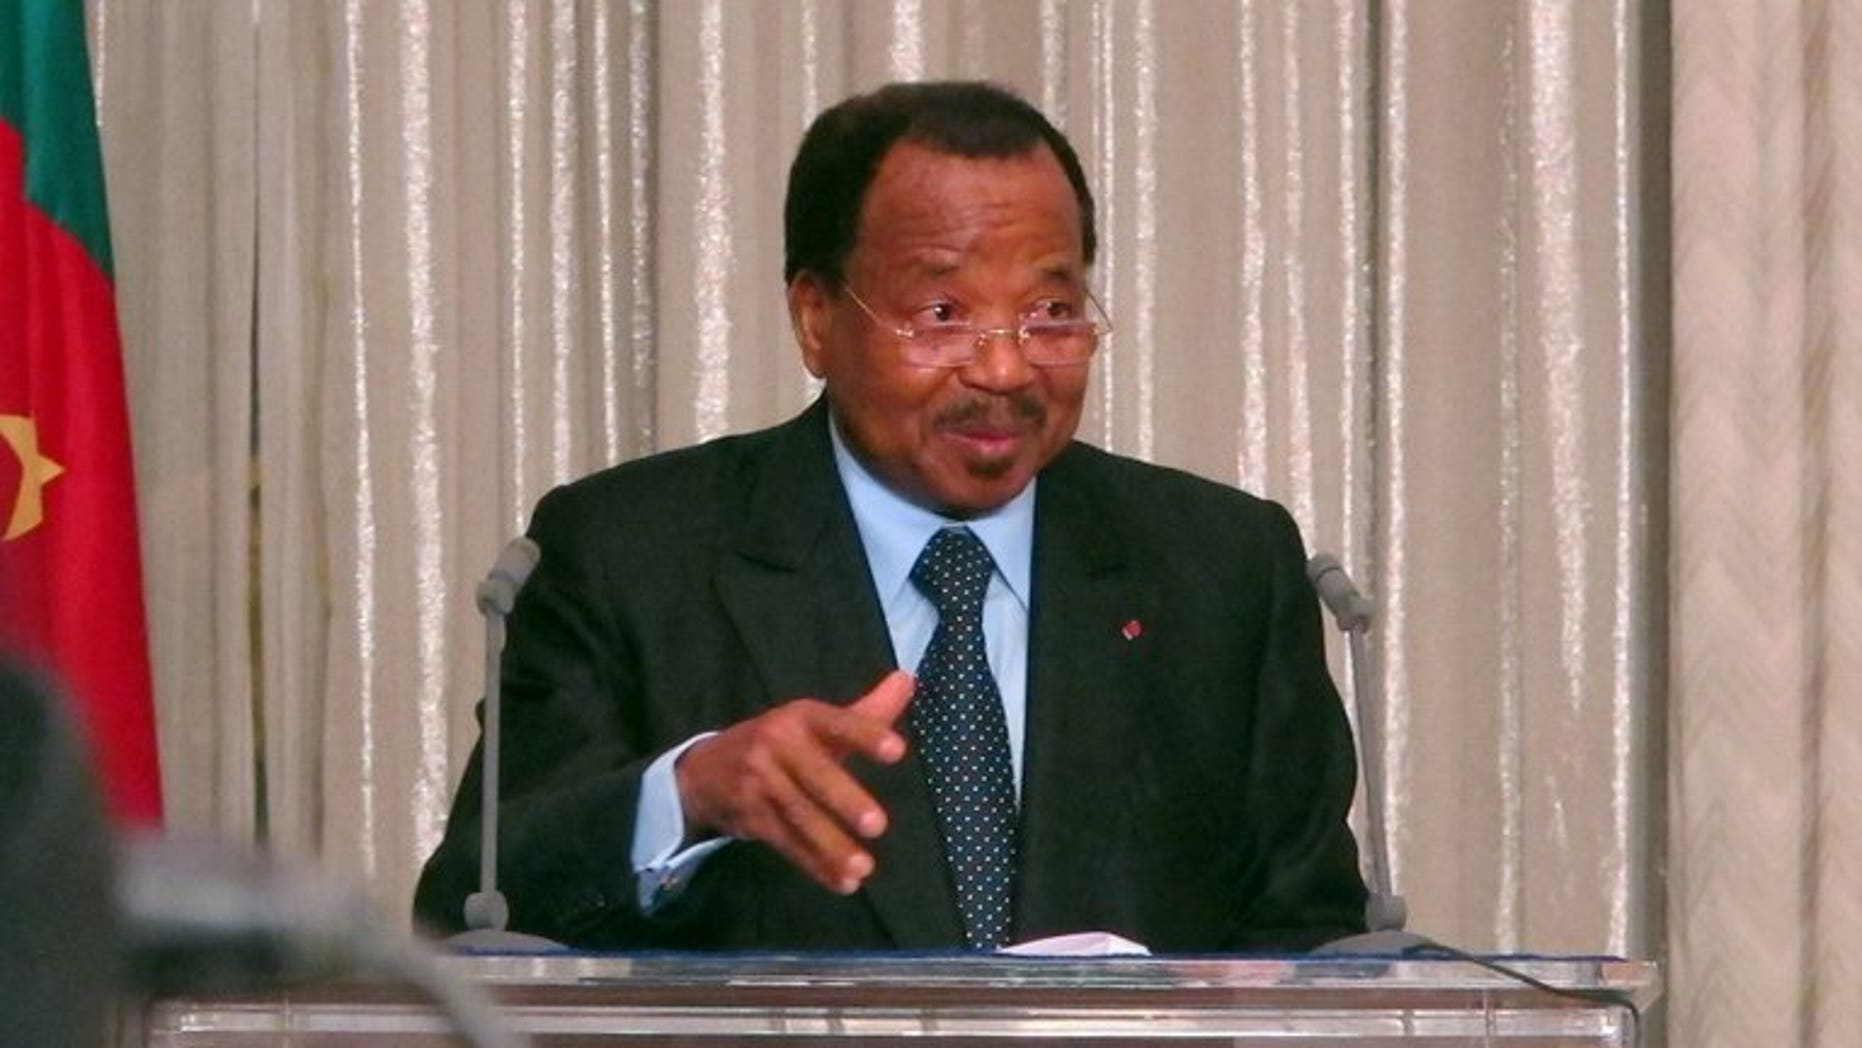 Cameroon President Paul Biya, seen at the presidential palace in Yaounde on April 19, 2013. Legislative and municipal elections will be held on September 30 in Cameroon, the president has announced on state radio.